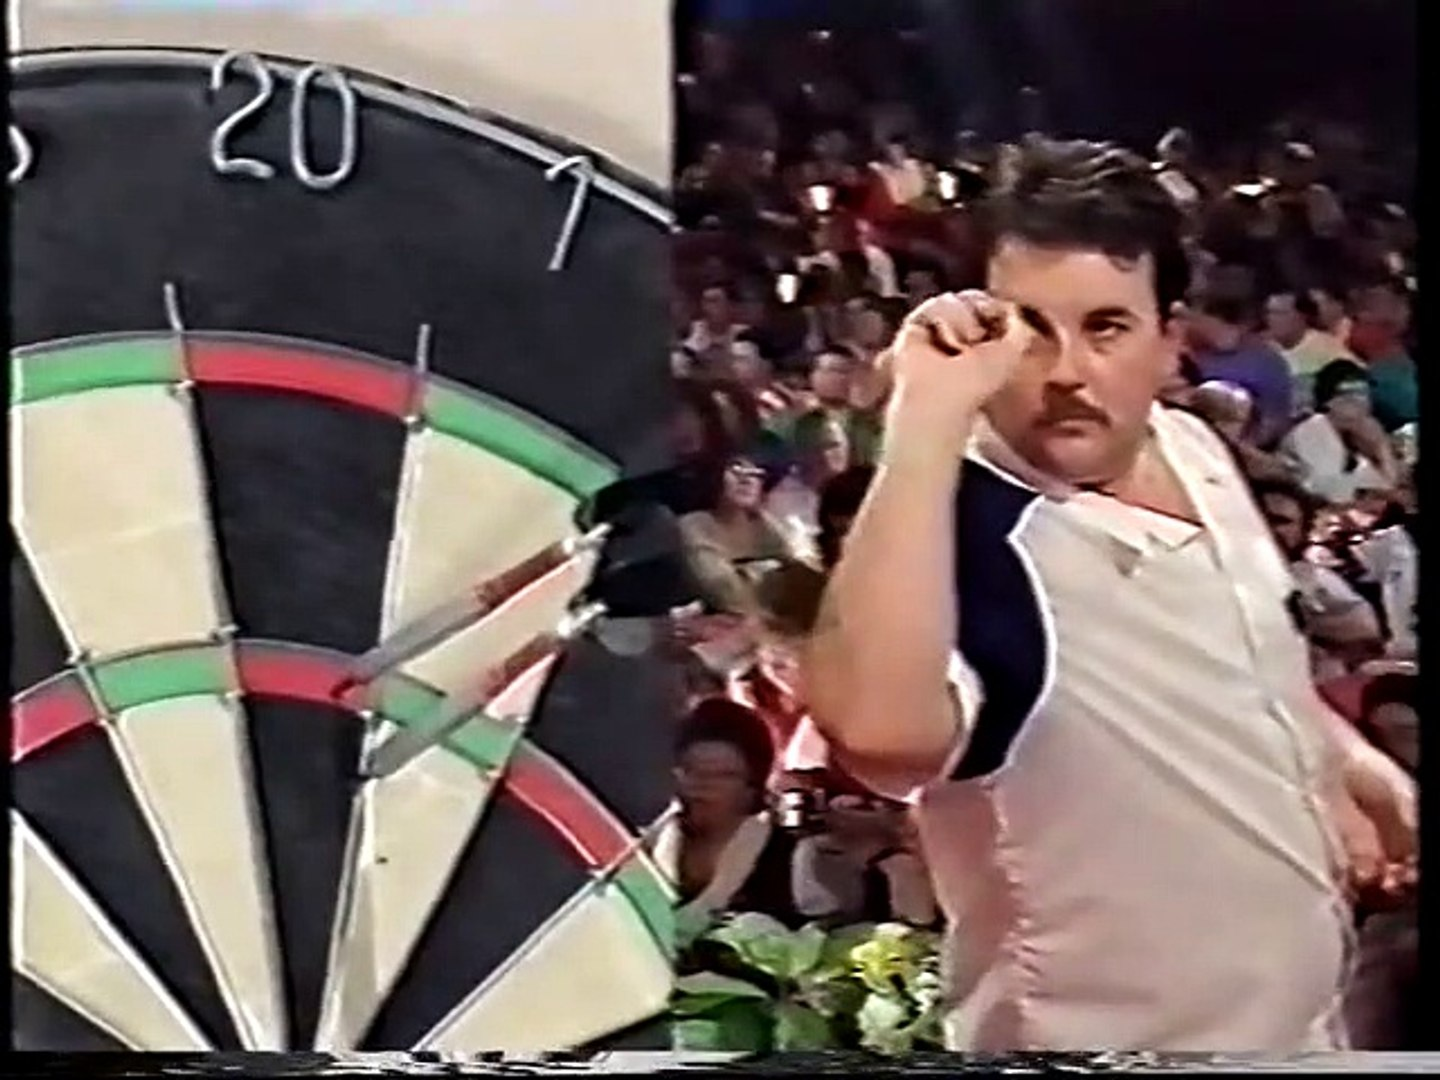 BDO World Darts Championship Final 1992 - Mike Gregory vs Phil Taylor  2of4